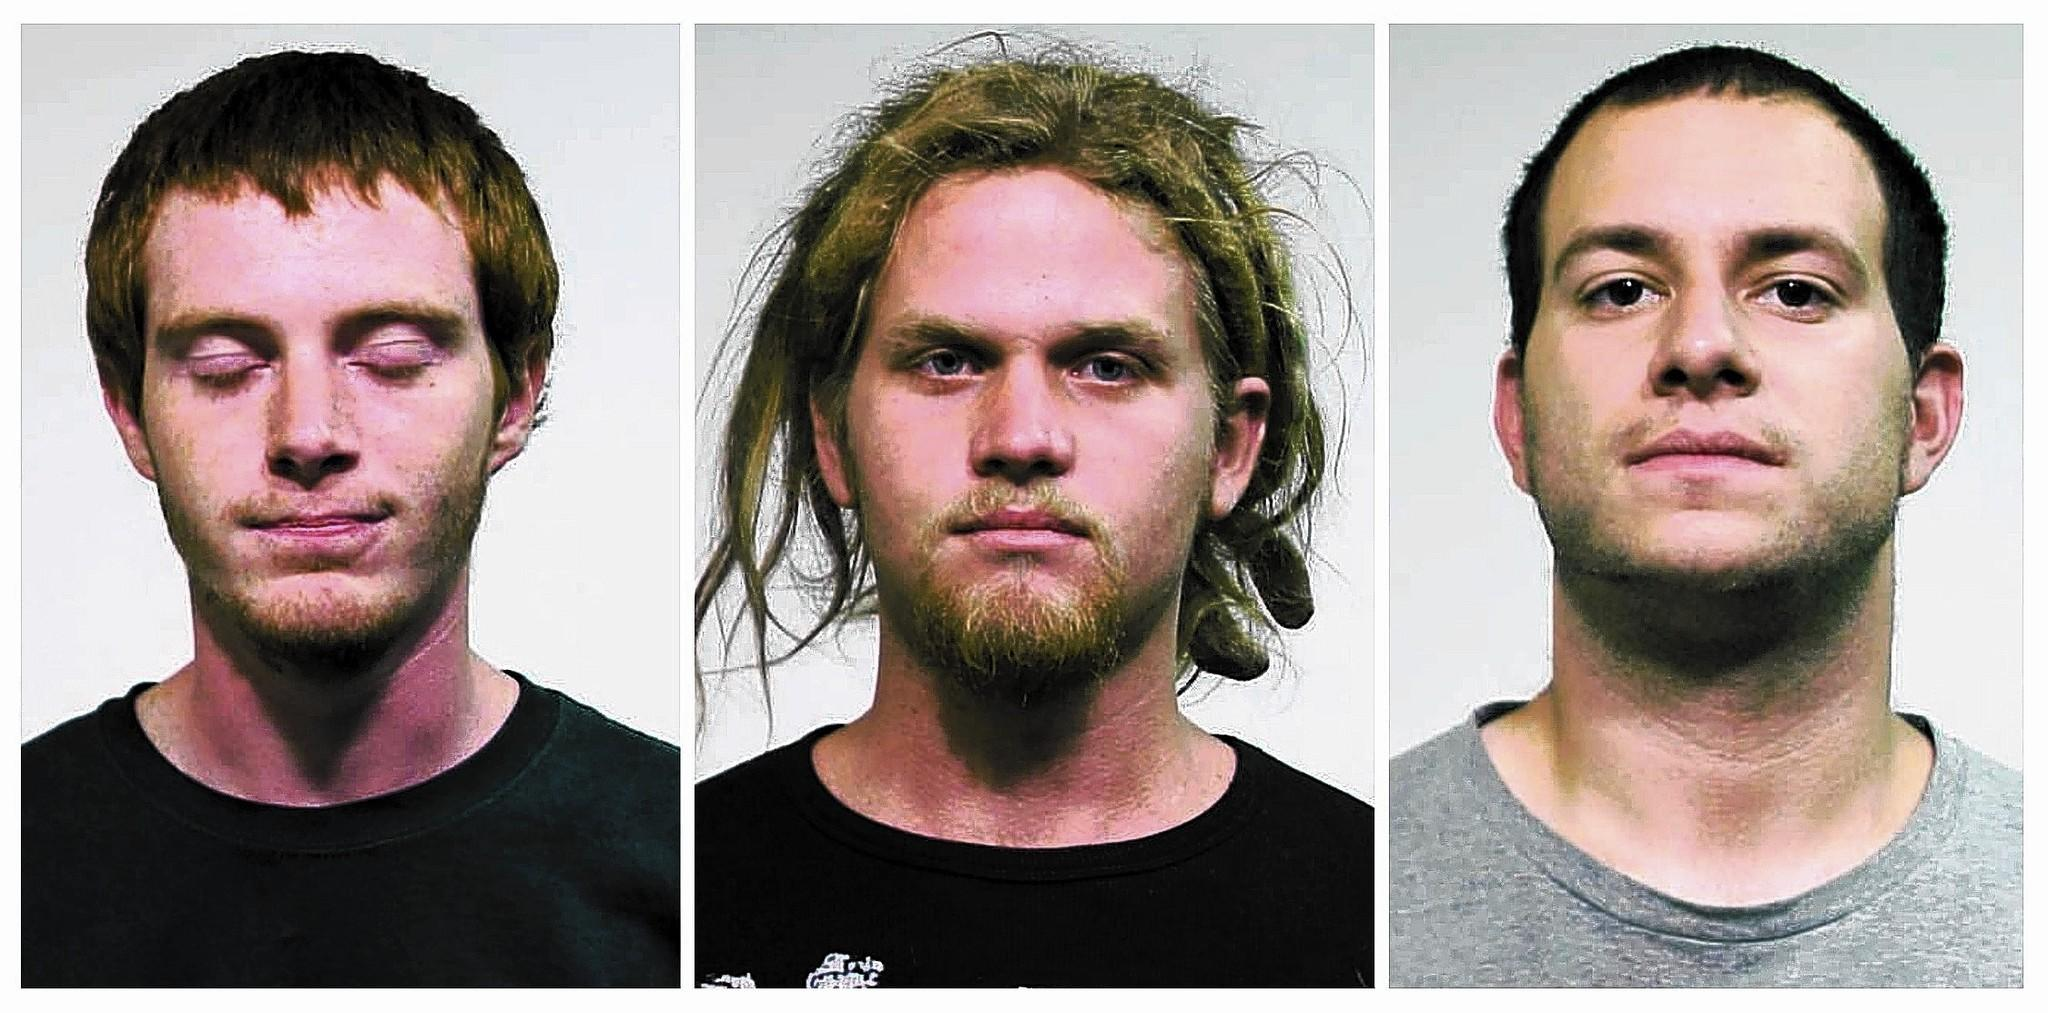 Defense attorneys don't dispute that their clients Brian Church, from left, Brent Betterly and Jared Chase, dubbed the NATO 3, possessed incendiary devices. But they told jurors that their clients never should have faced terrorism charges, calling it a political move by authorities desperate to justify millions of dollars spent on security for the summit.